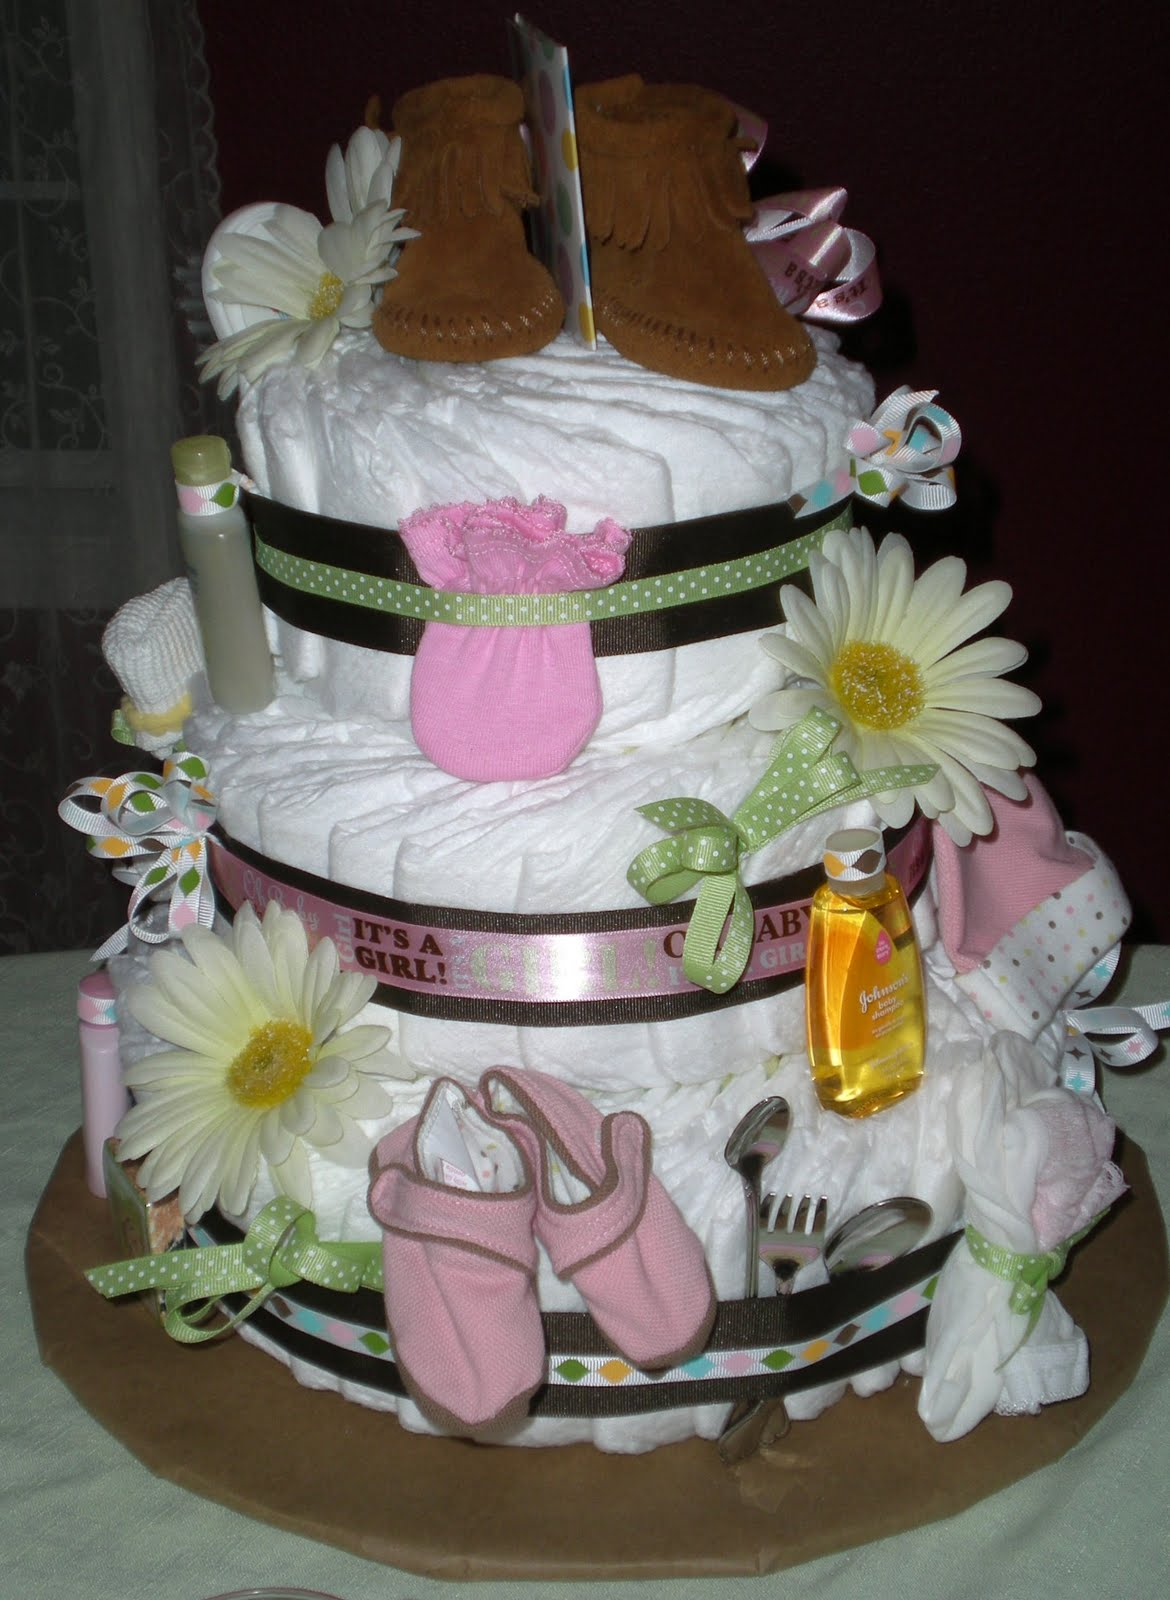 How To Make Disposable Diaper Cake